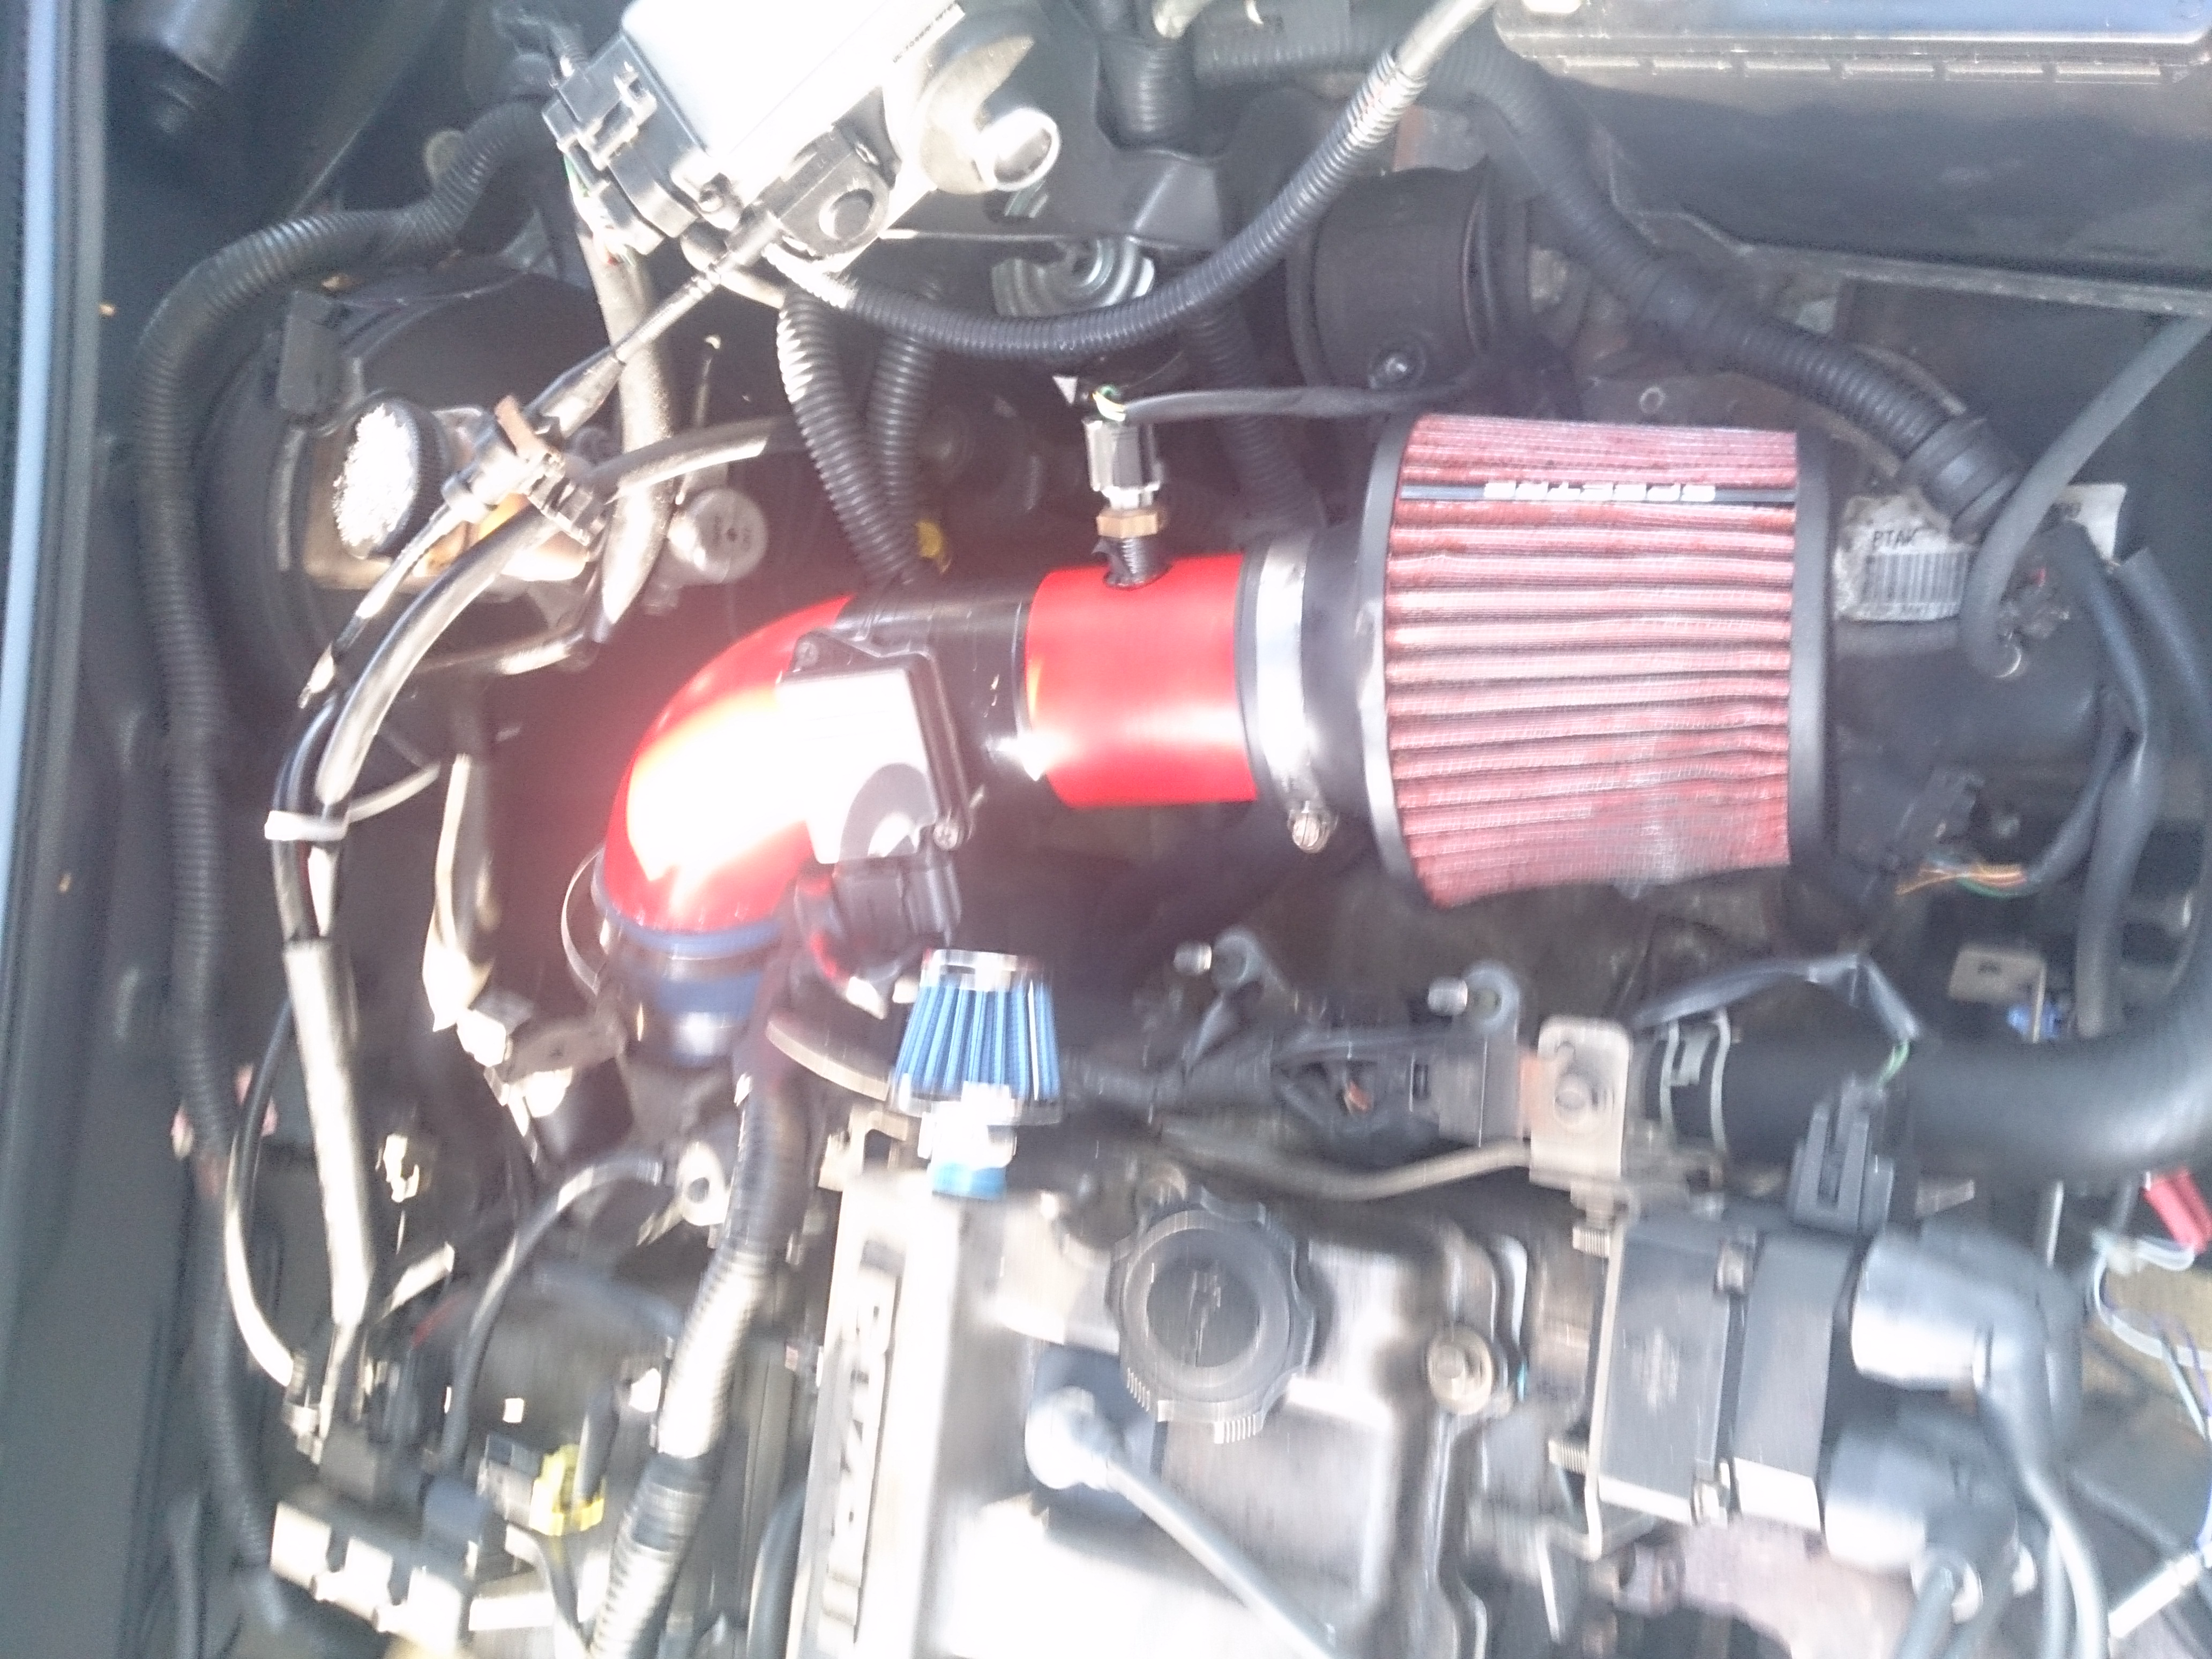 Added the intake in  - 19091842